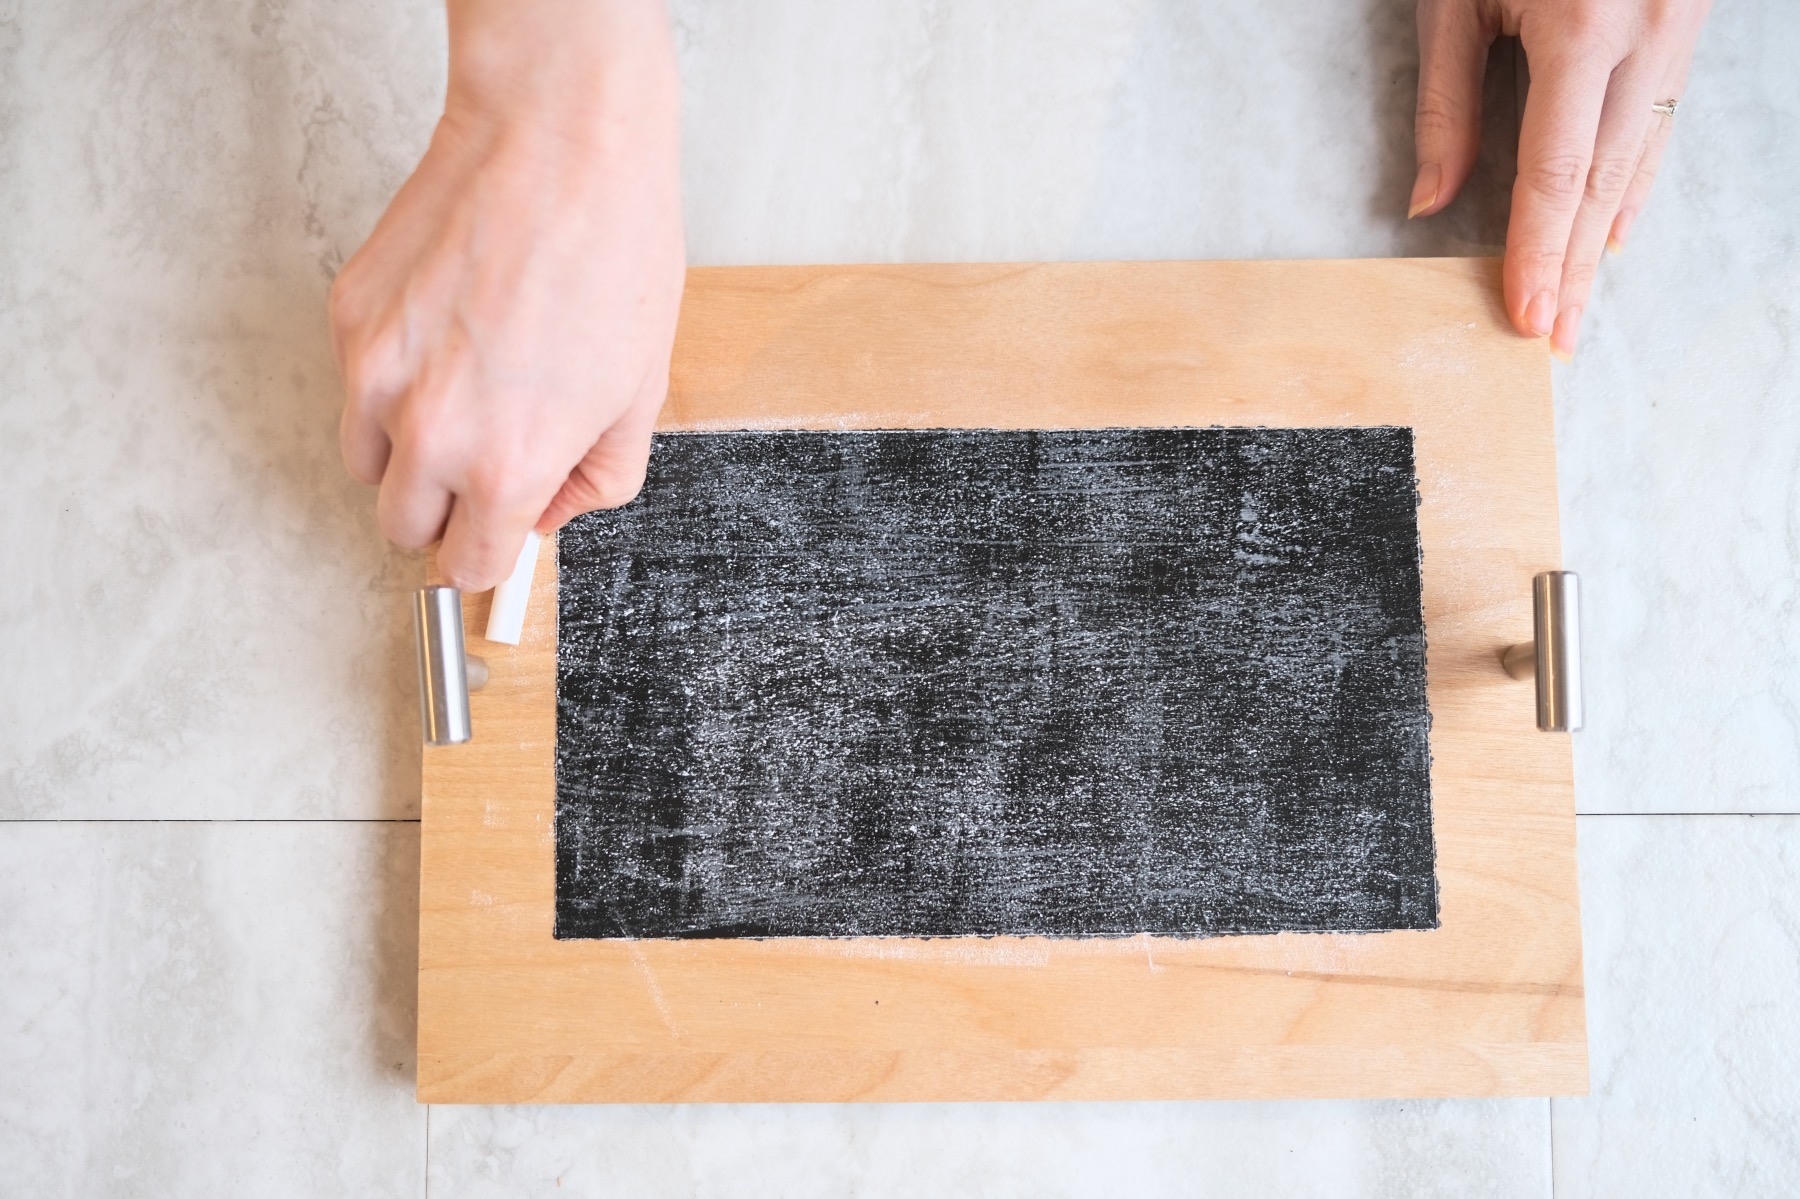 seasoning a chalkboard step by step instructions